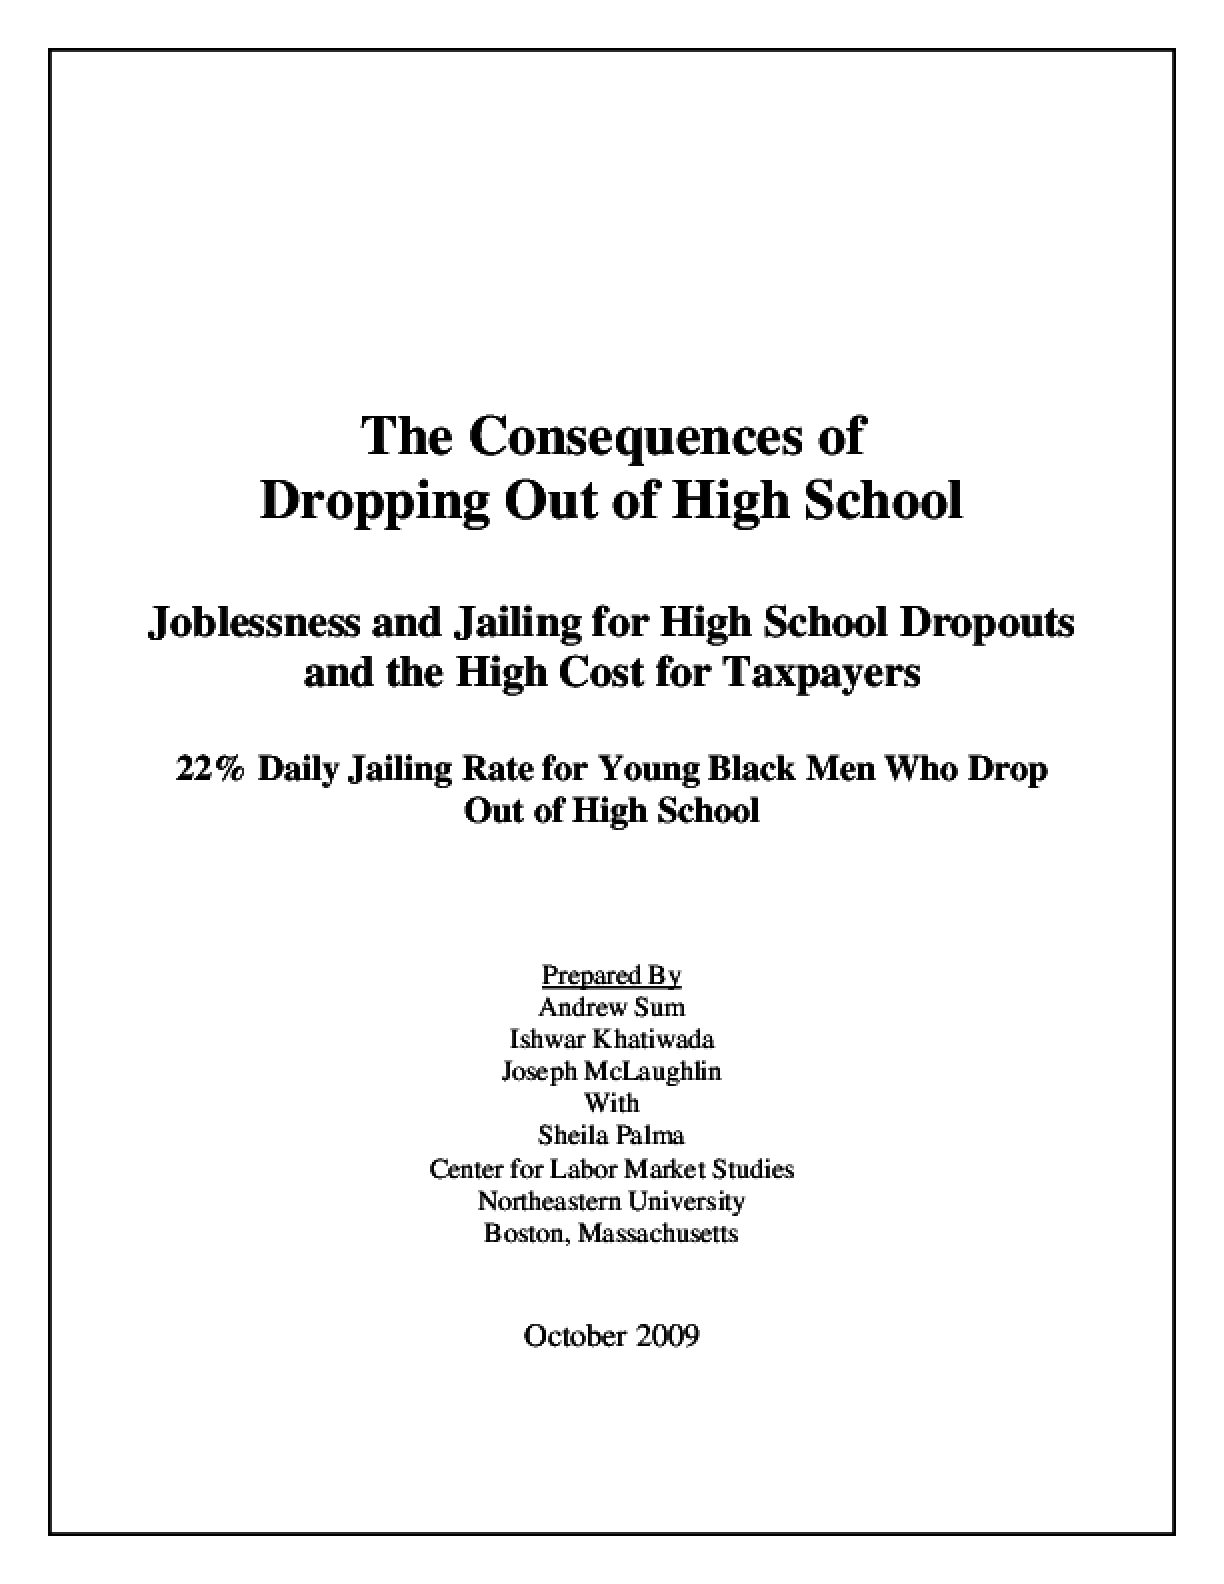 The Consequences of Dropping Out of High School: Joblessness and Jailing for High School Dropouts and the High Cost for Taxpayers